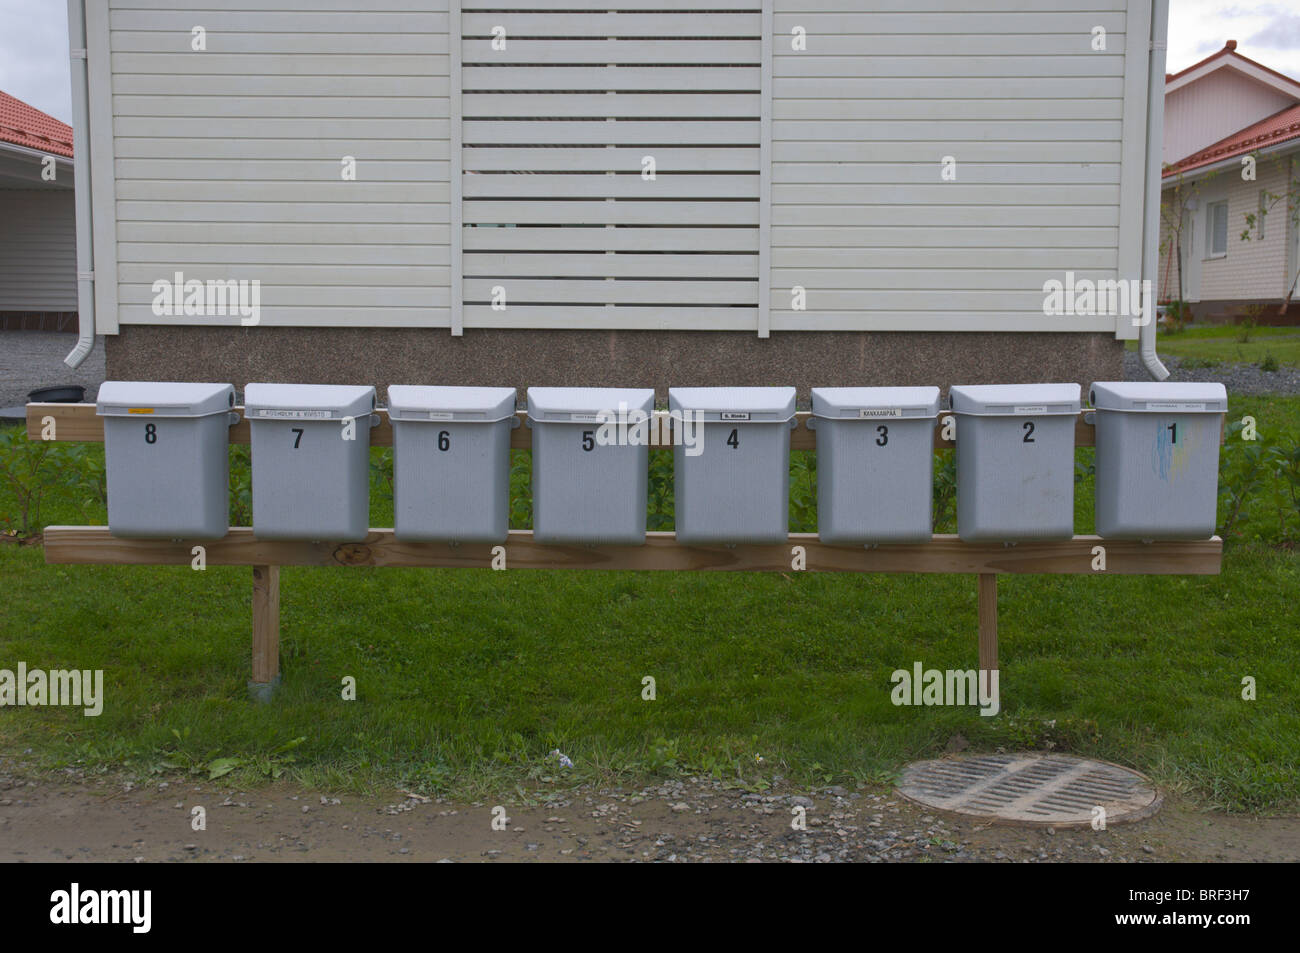 Postboxes Finland Scandinavia northern Europe - Stock Image